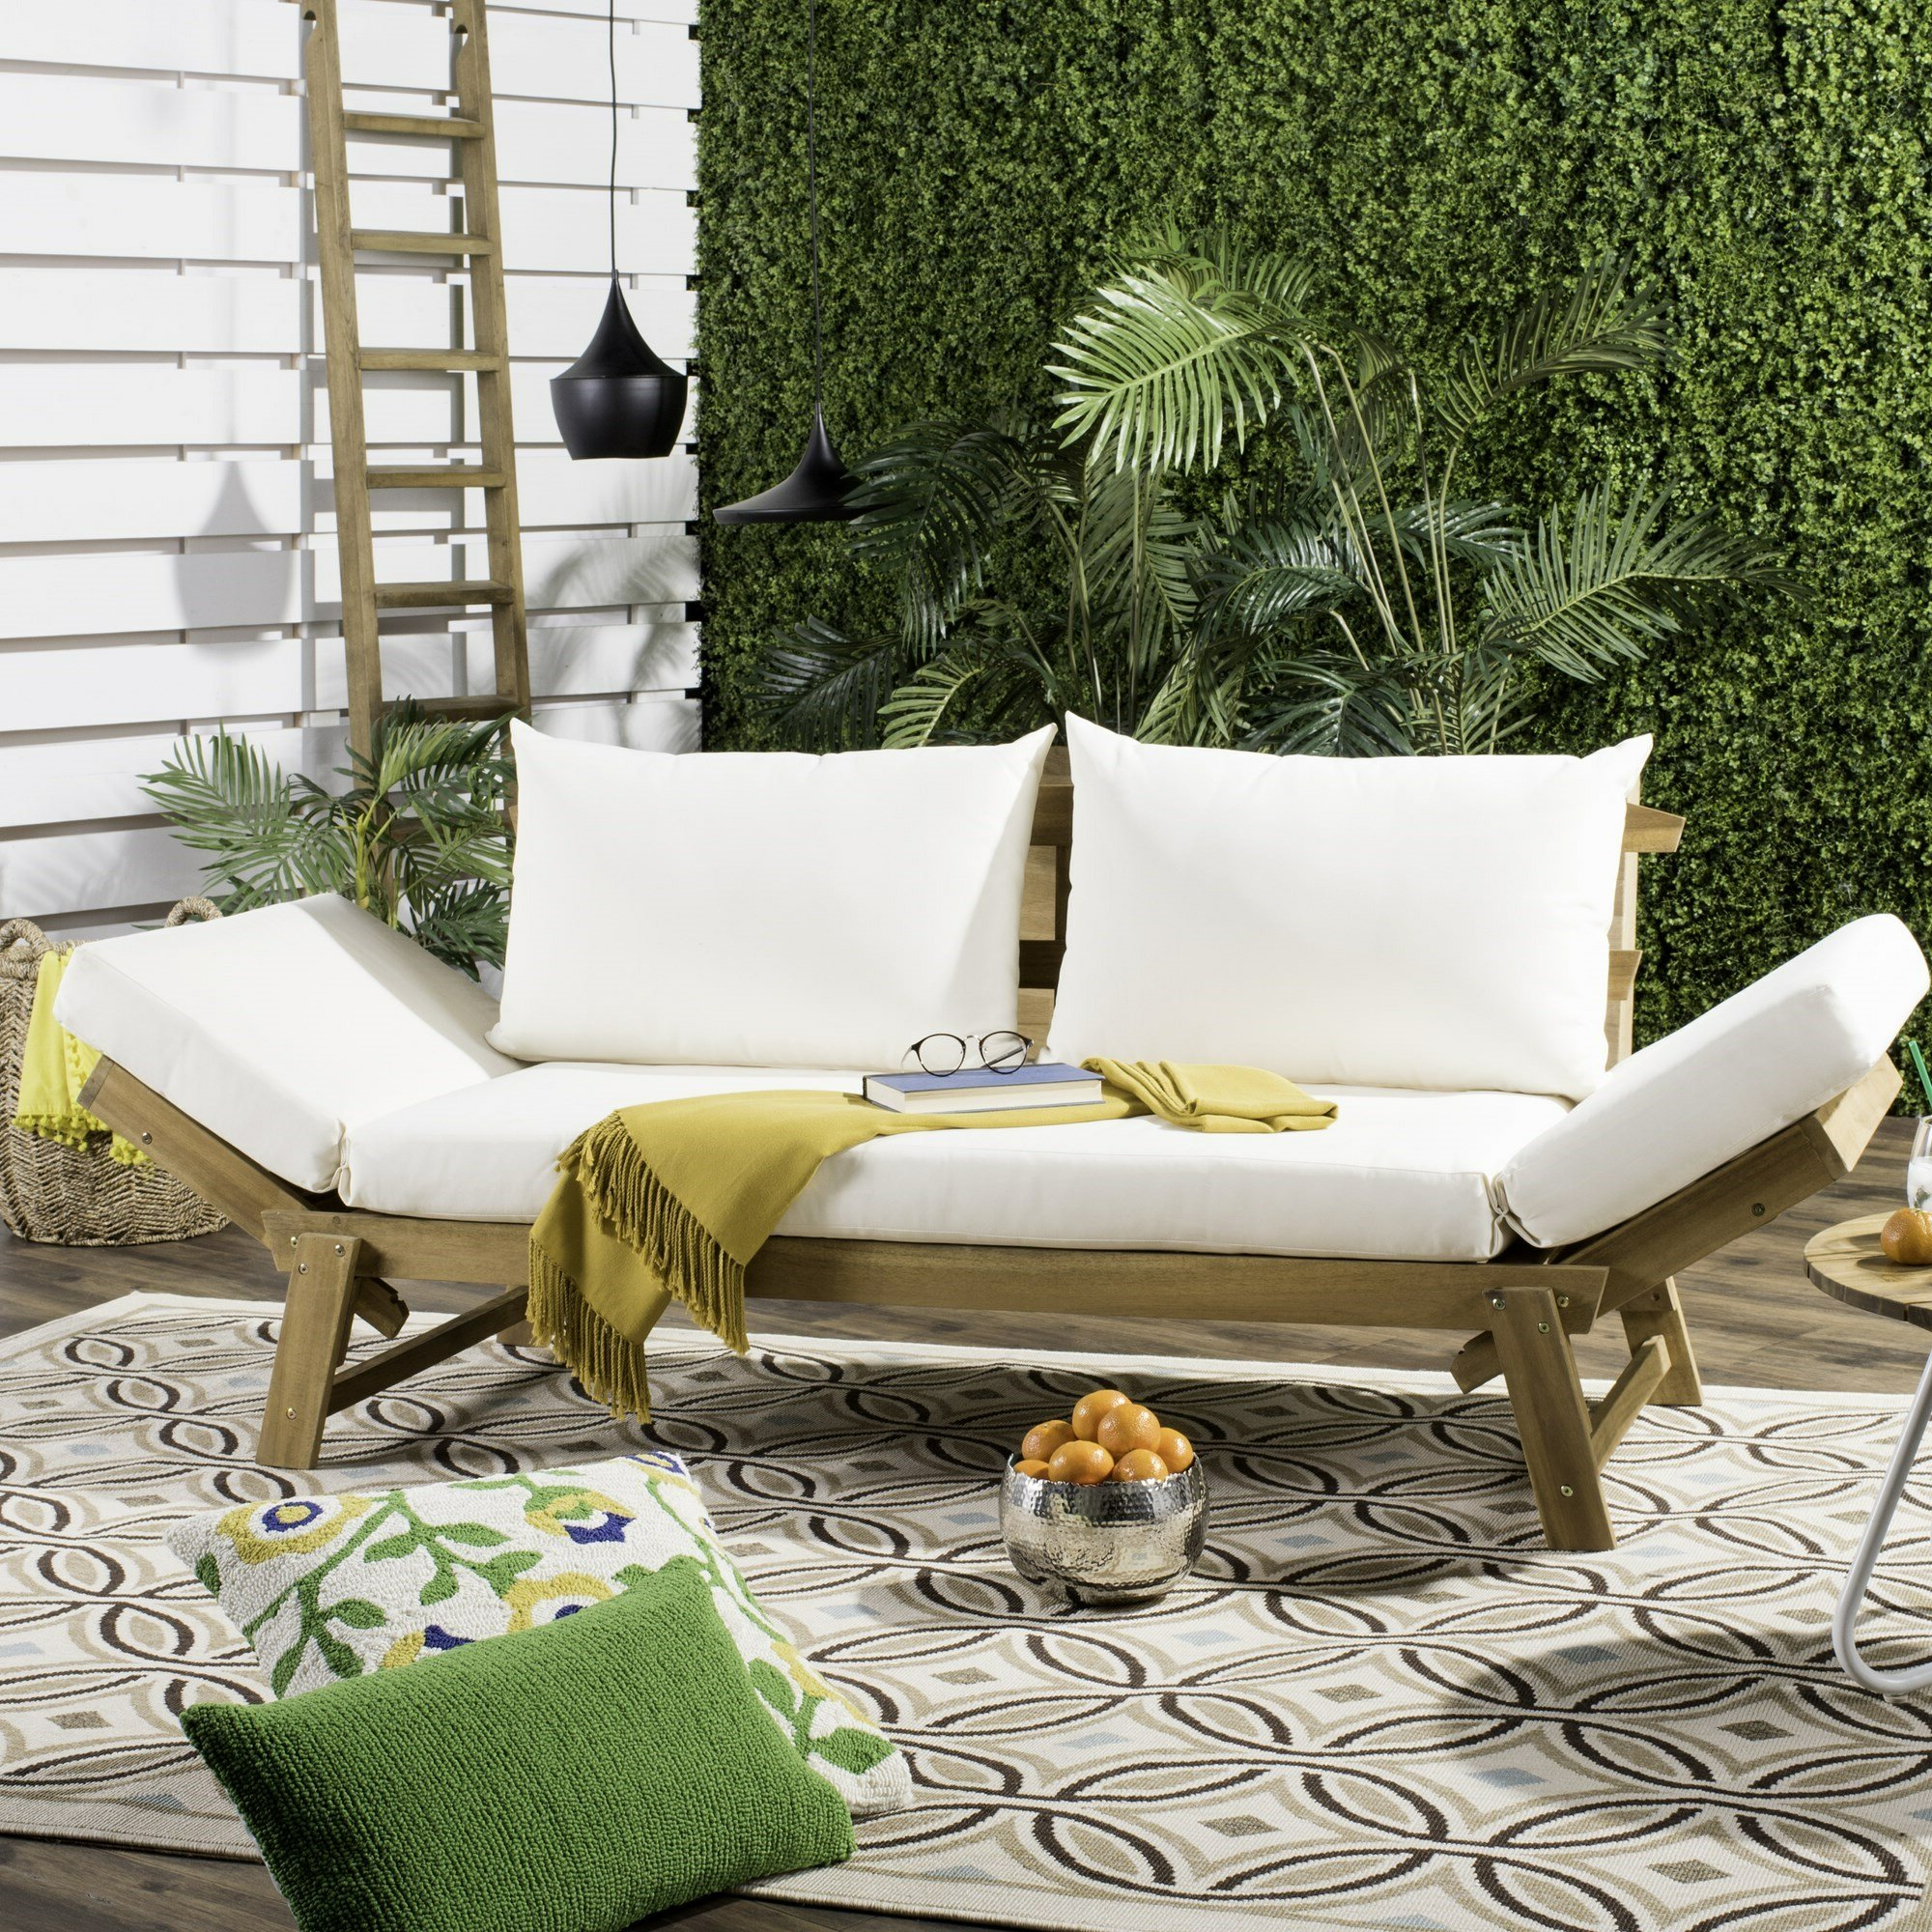 Best And Newest Whitely Patio Daybed With Cushions Inside Ellanti Patio Daybeds With Cushions (Gallery 21 of 25)